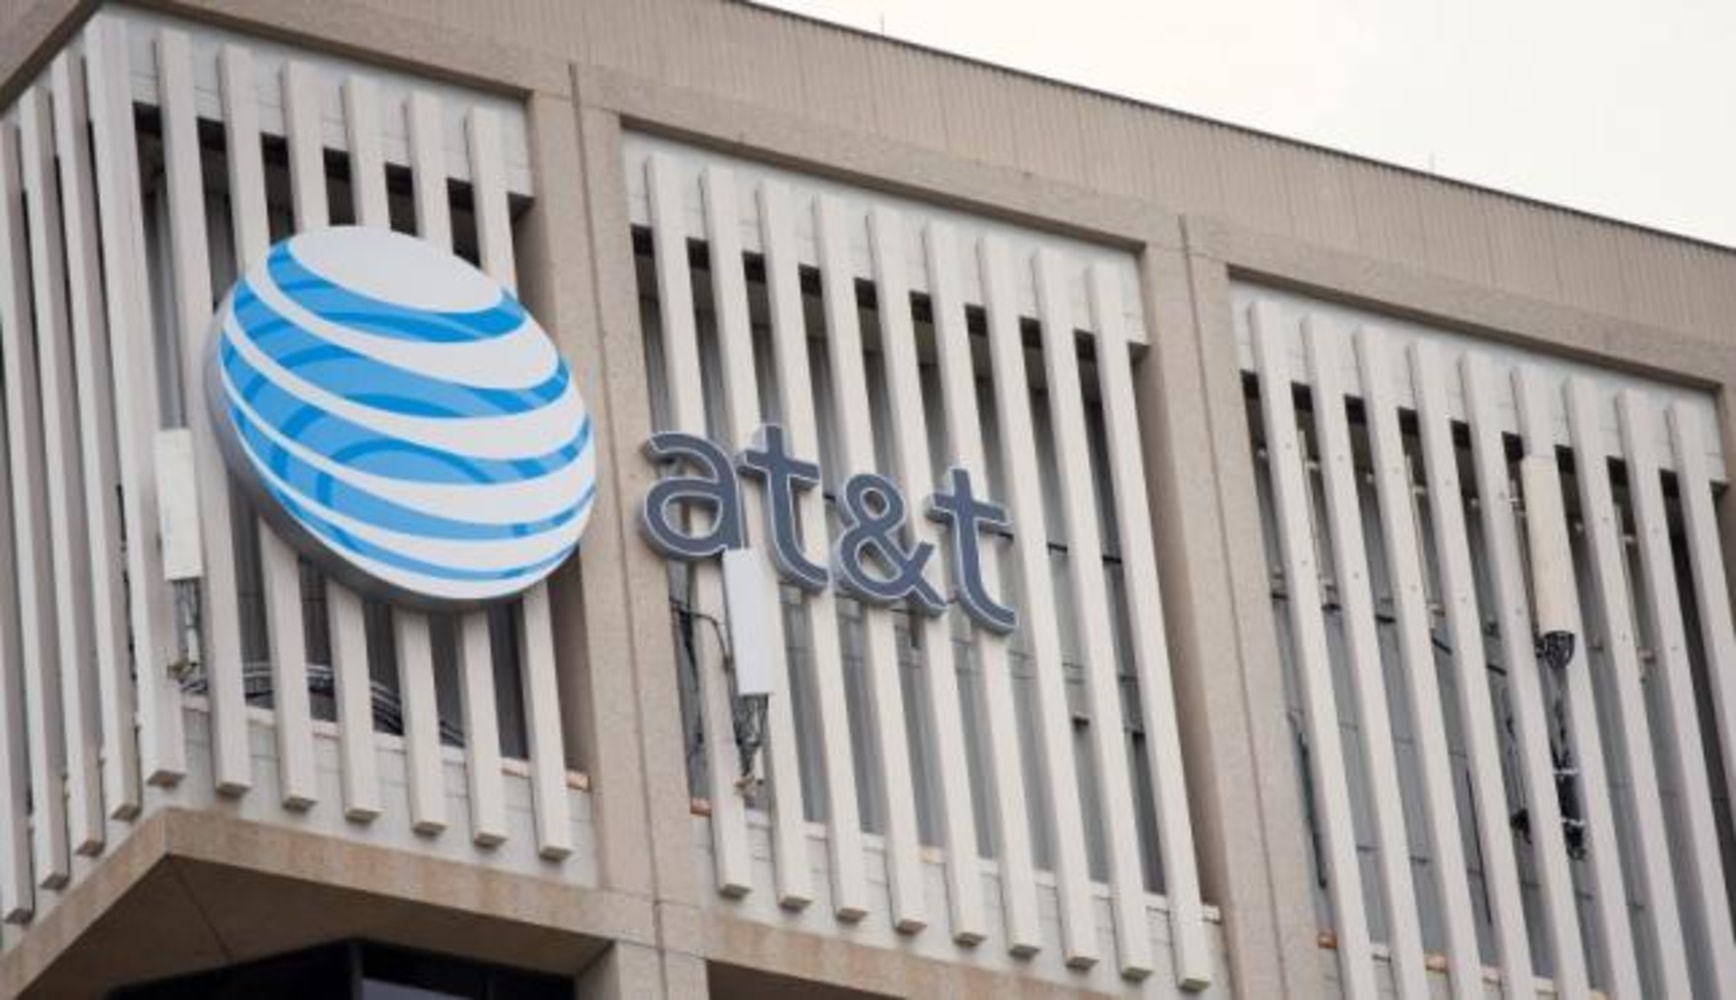 AT&T to pay $7.5 million in fraud scheme that benefited drug traffickers